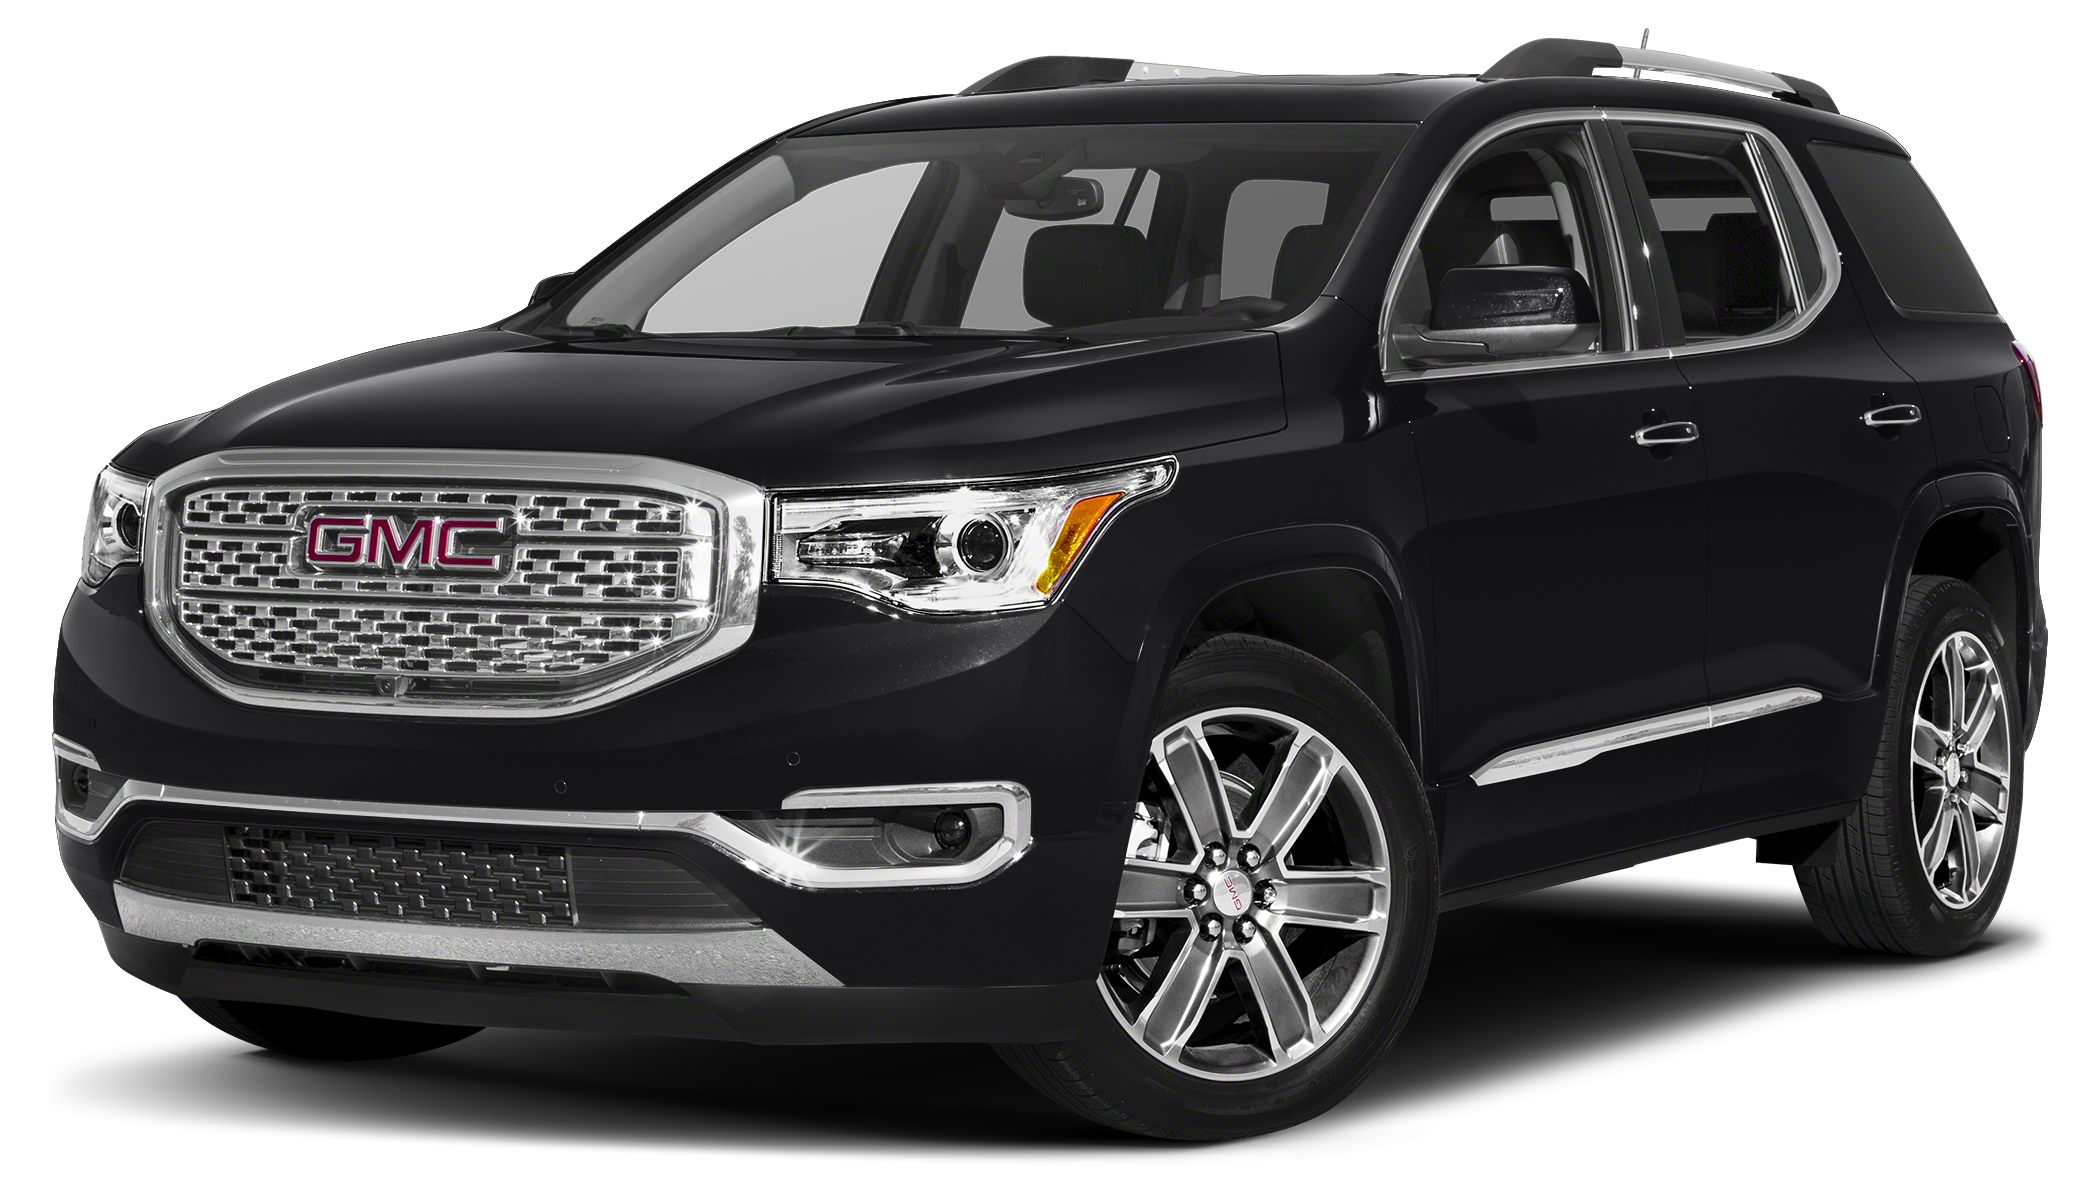 2018 GMC Acadia Denali Ebony Twilight Metallic 2018 GMC Acadia Denali AWD 6-Speed Automatic 36L V